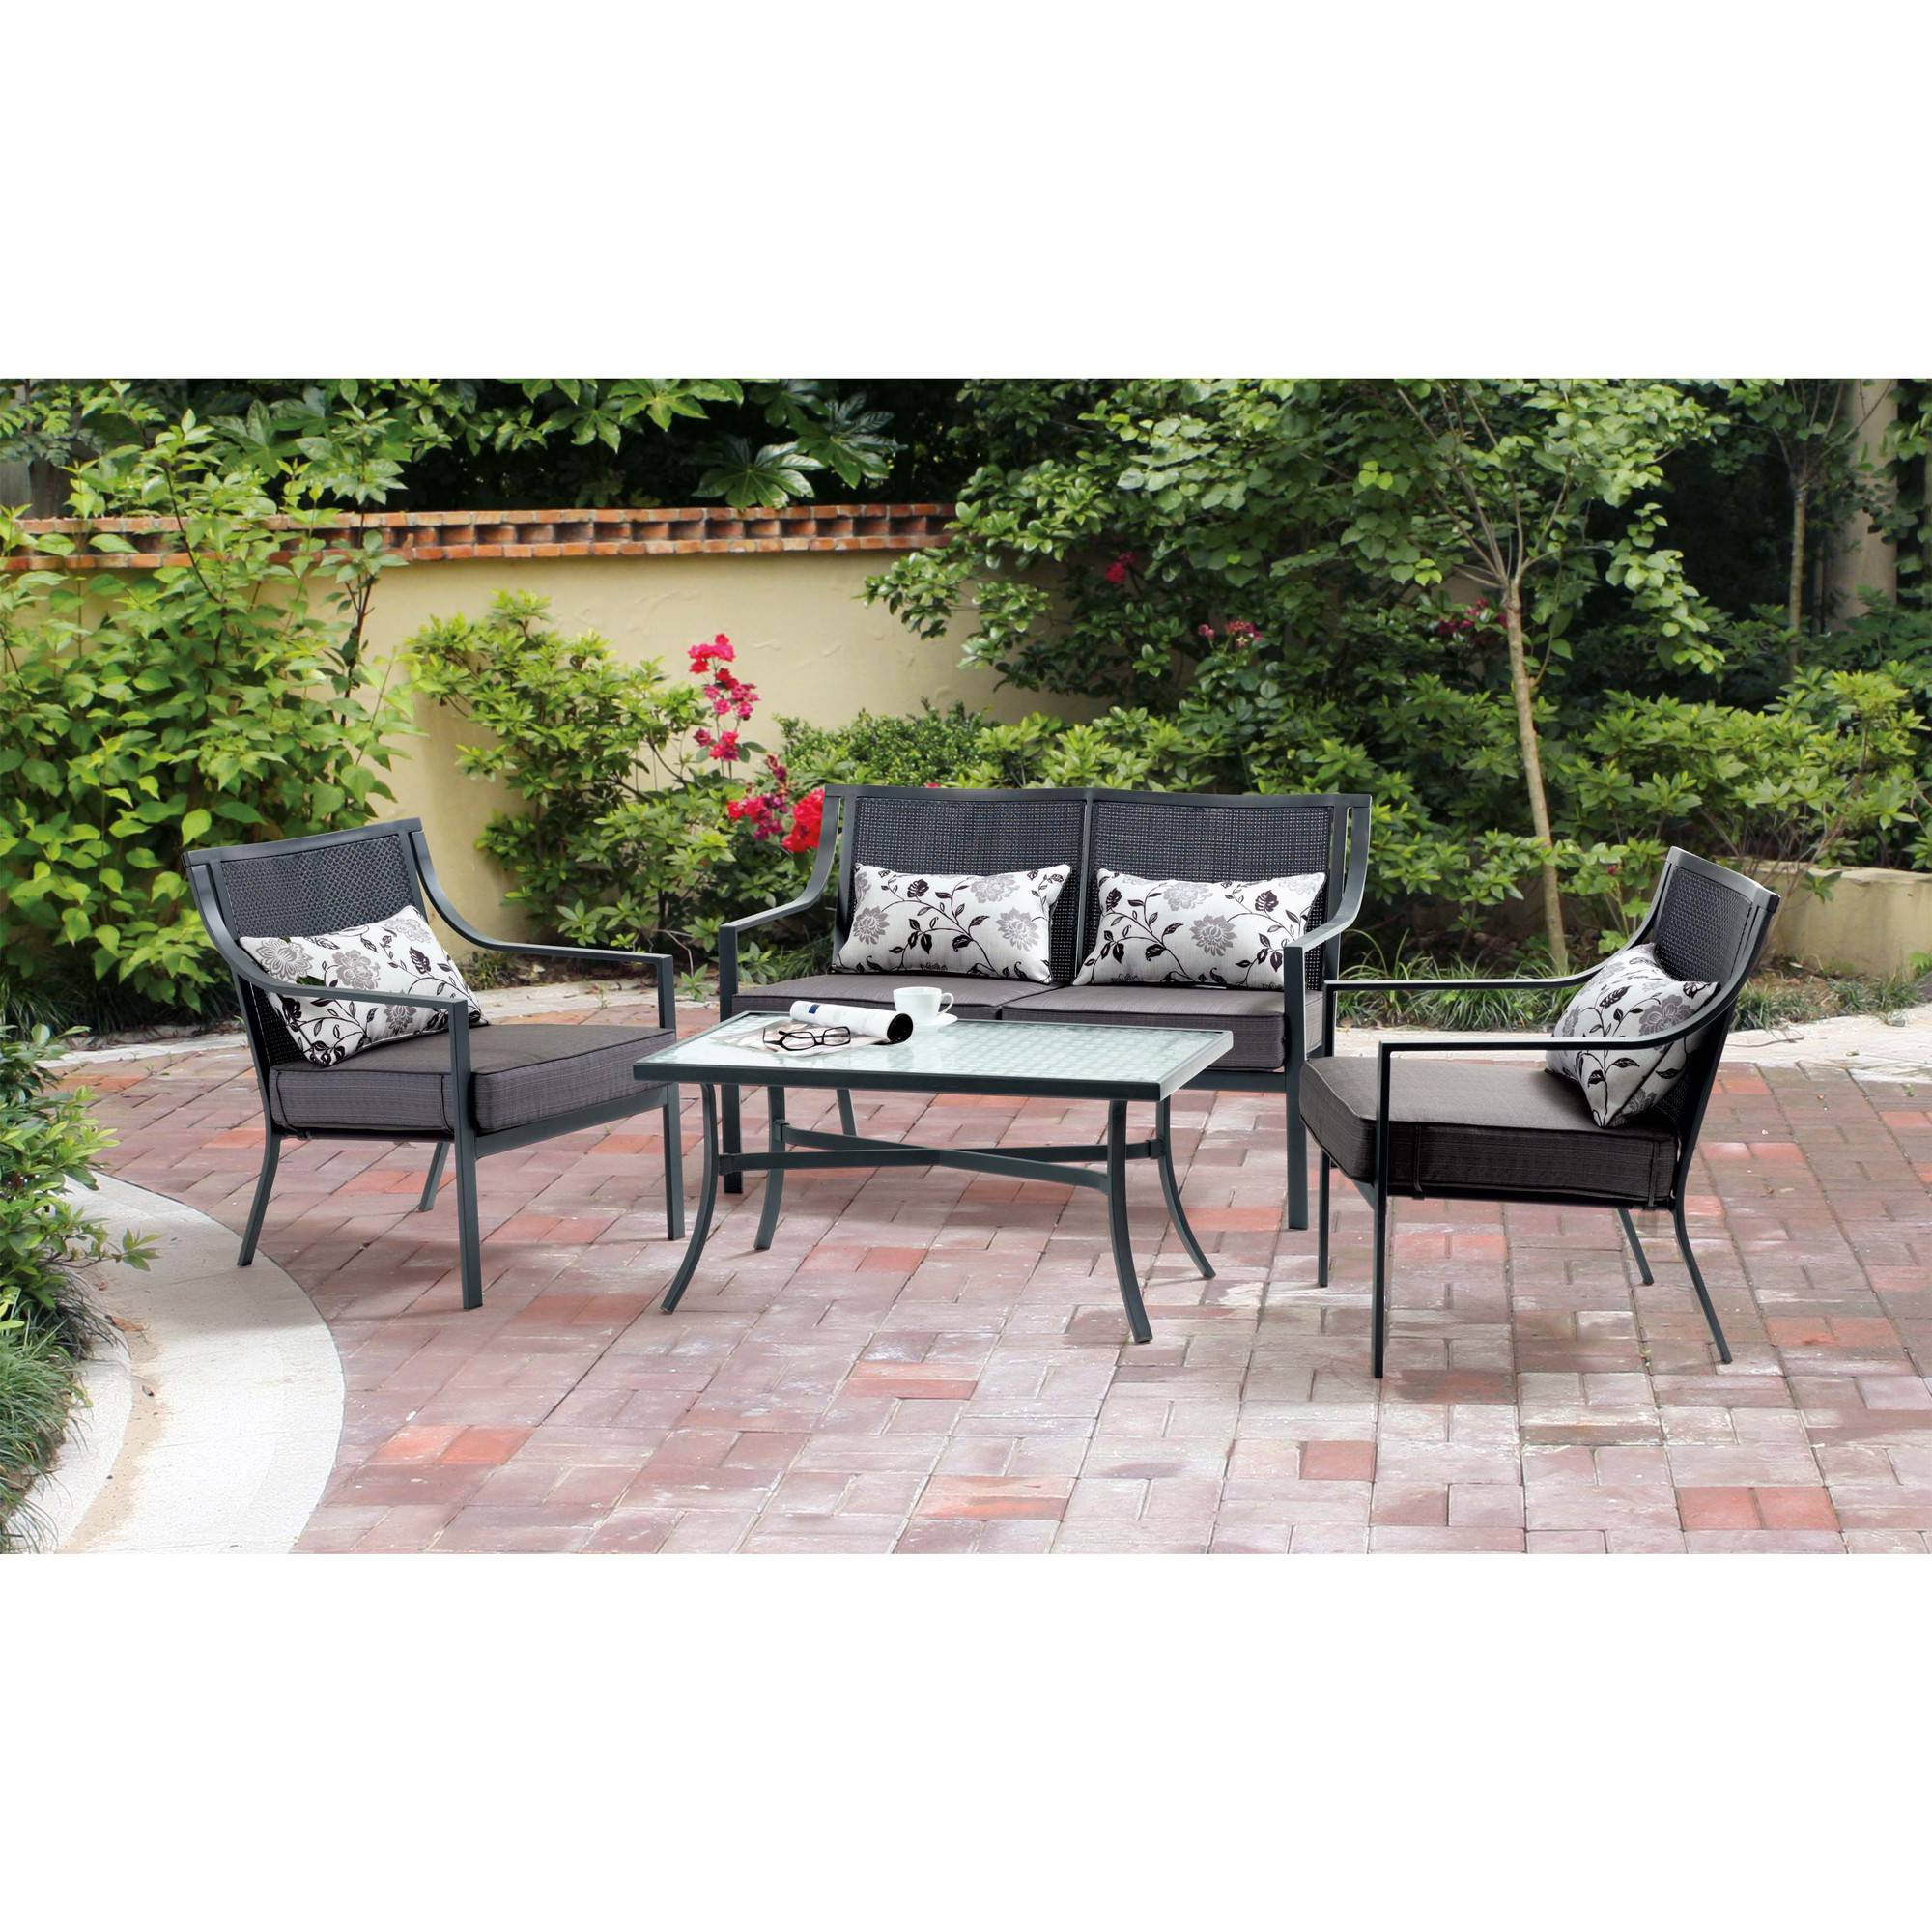 Mainstays Alexandra Square 4 Piece Patio Conversation Set Grey With Leaves Seats